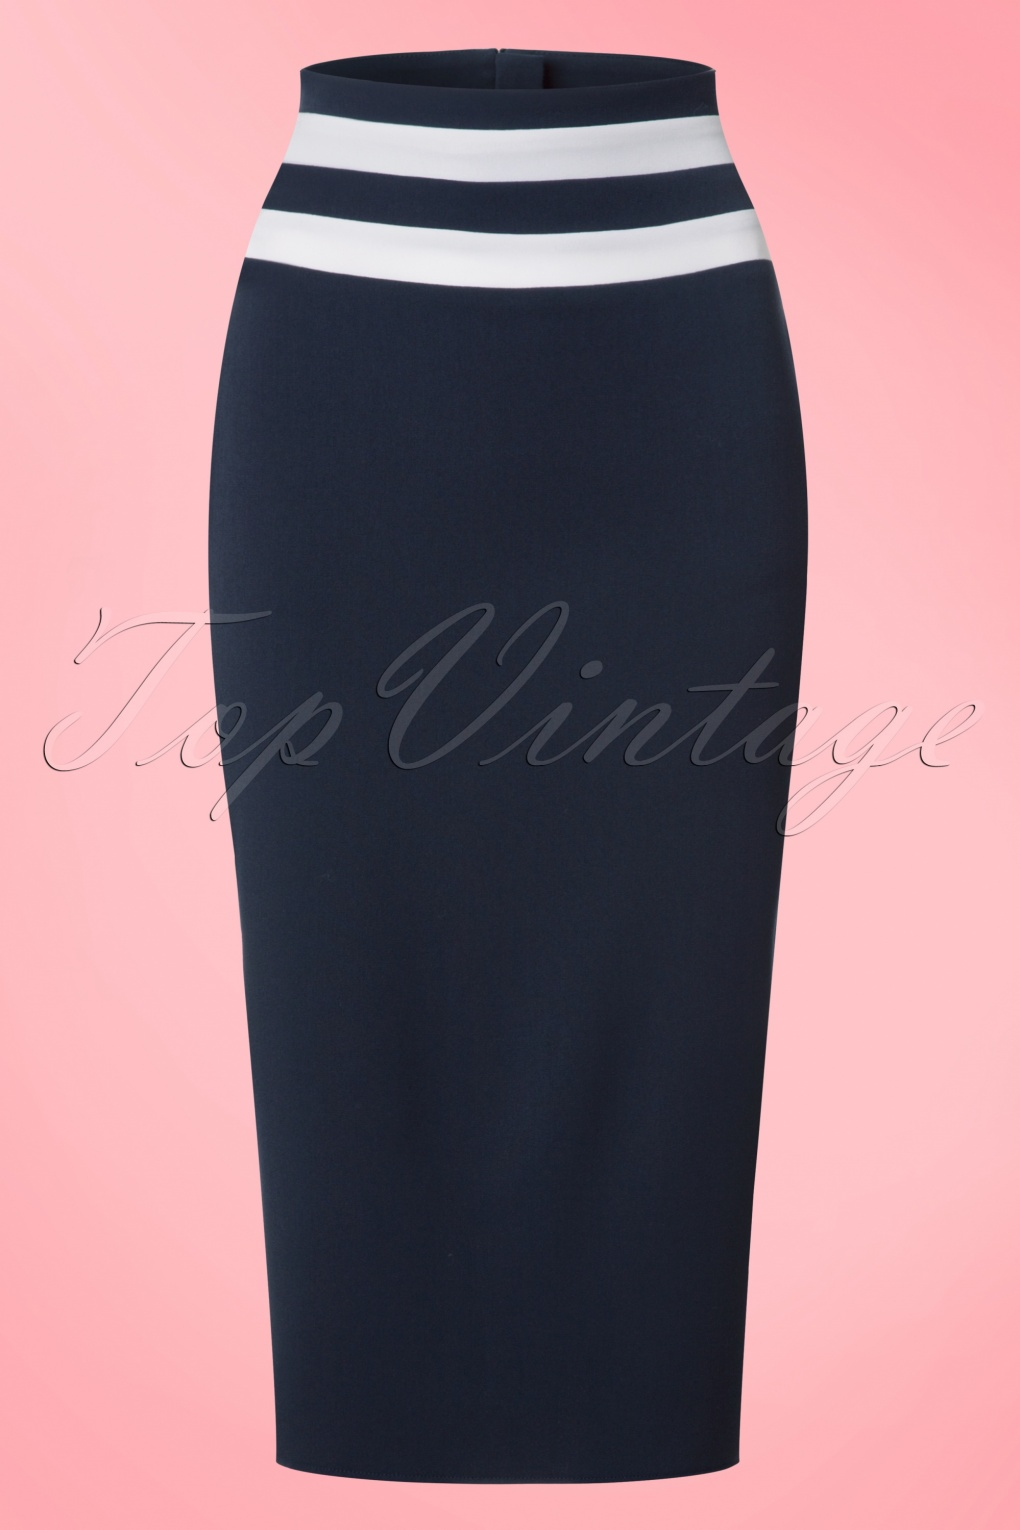 1950s Skirts for Sale: Poodle, Pencil, and Circle Skirts 50s Laura Lee Paneled Pencil Skirt in Navy £58.64 AT vintagedancer.com